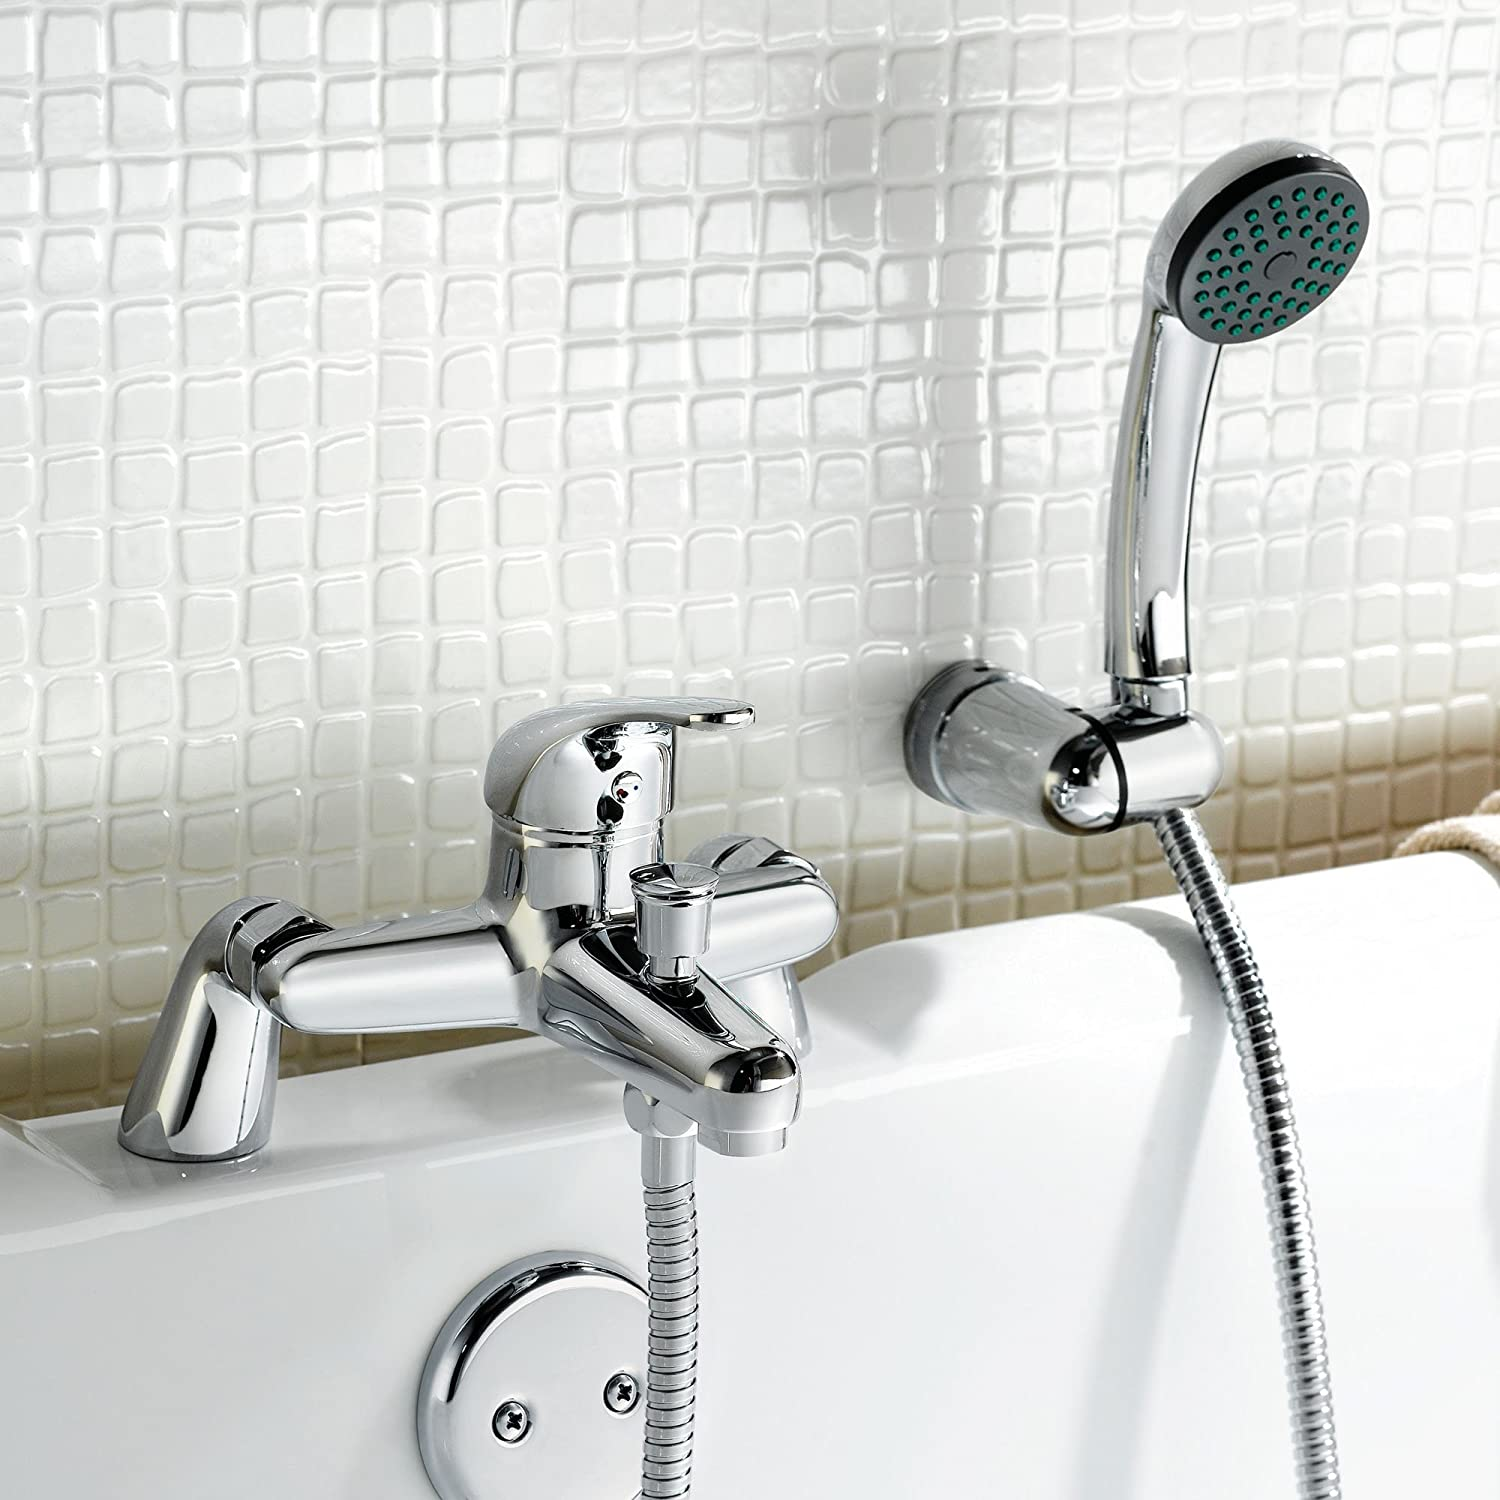 Wonderful Bath Tap With Shower Head Pictures Inspiration - Bathtub ...